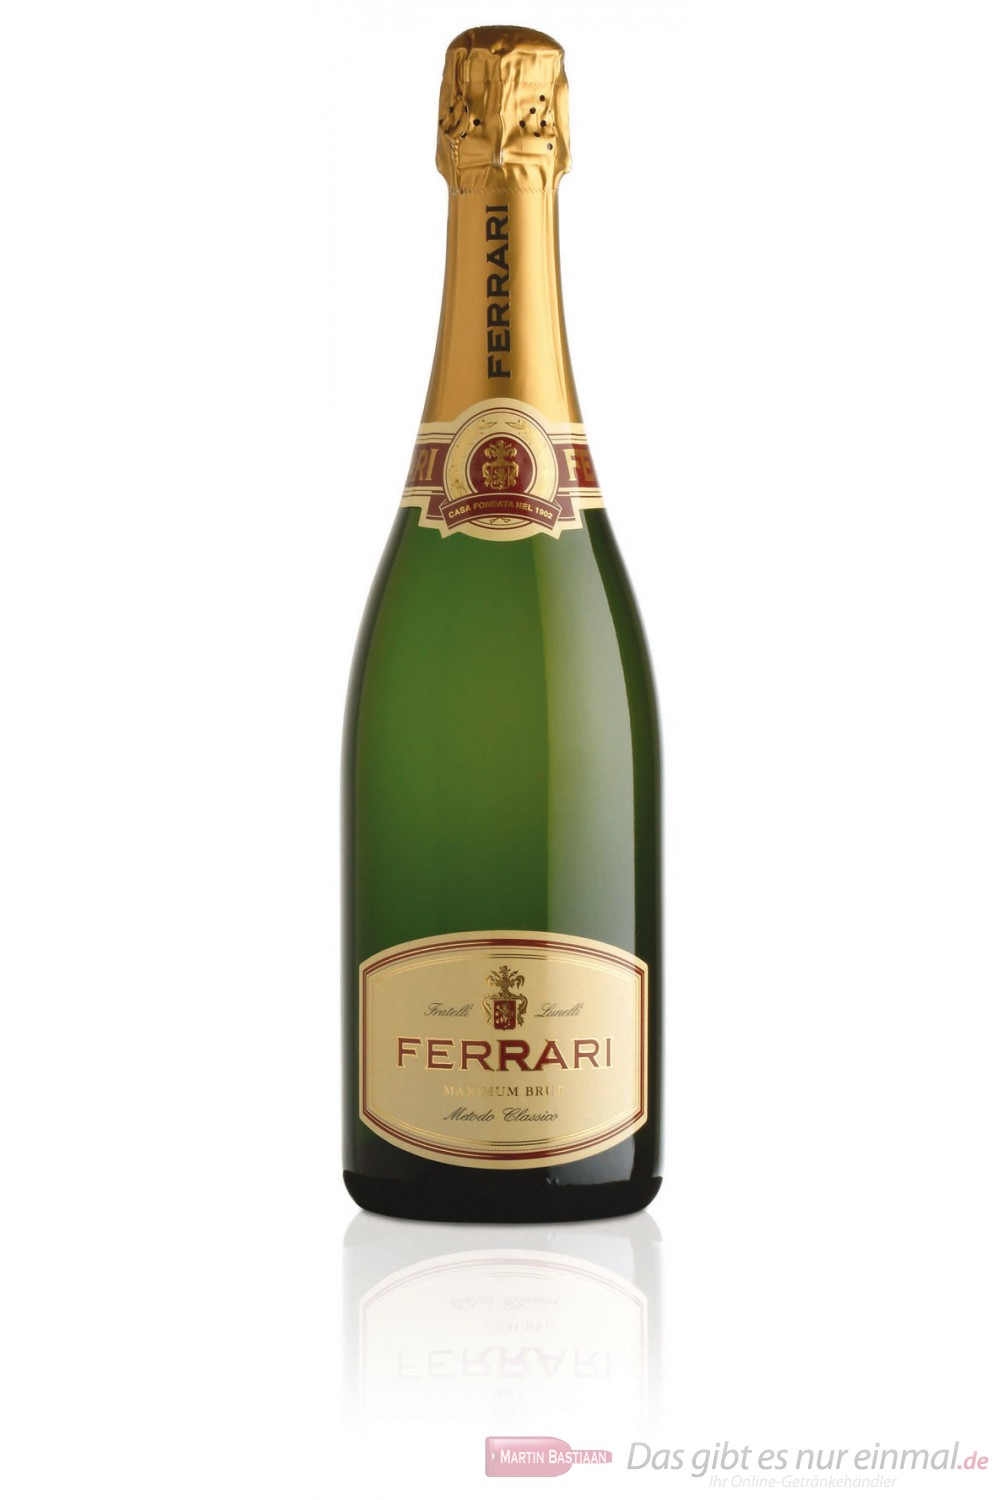 Ferrari Sekt Maximum Brut 12,5% 6-0,75l Flaschen